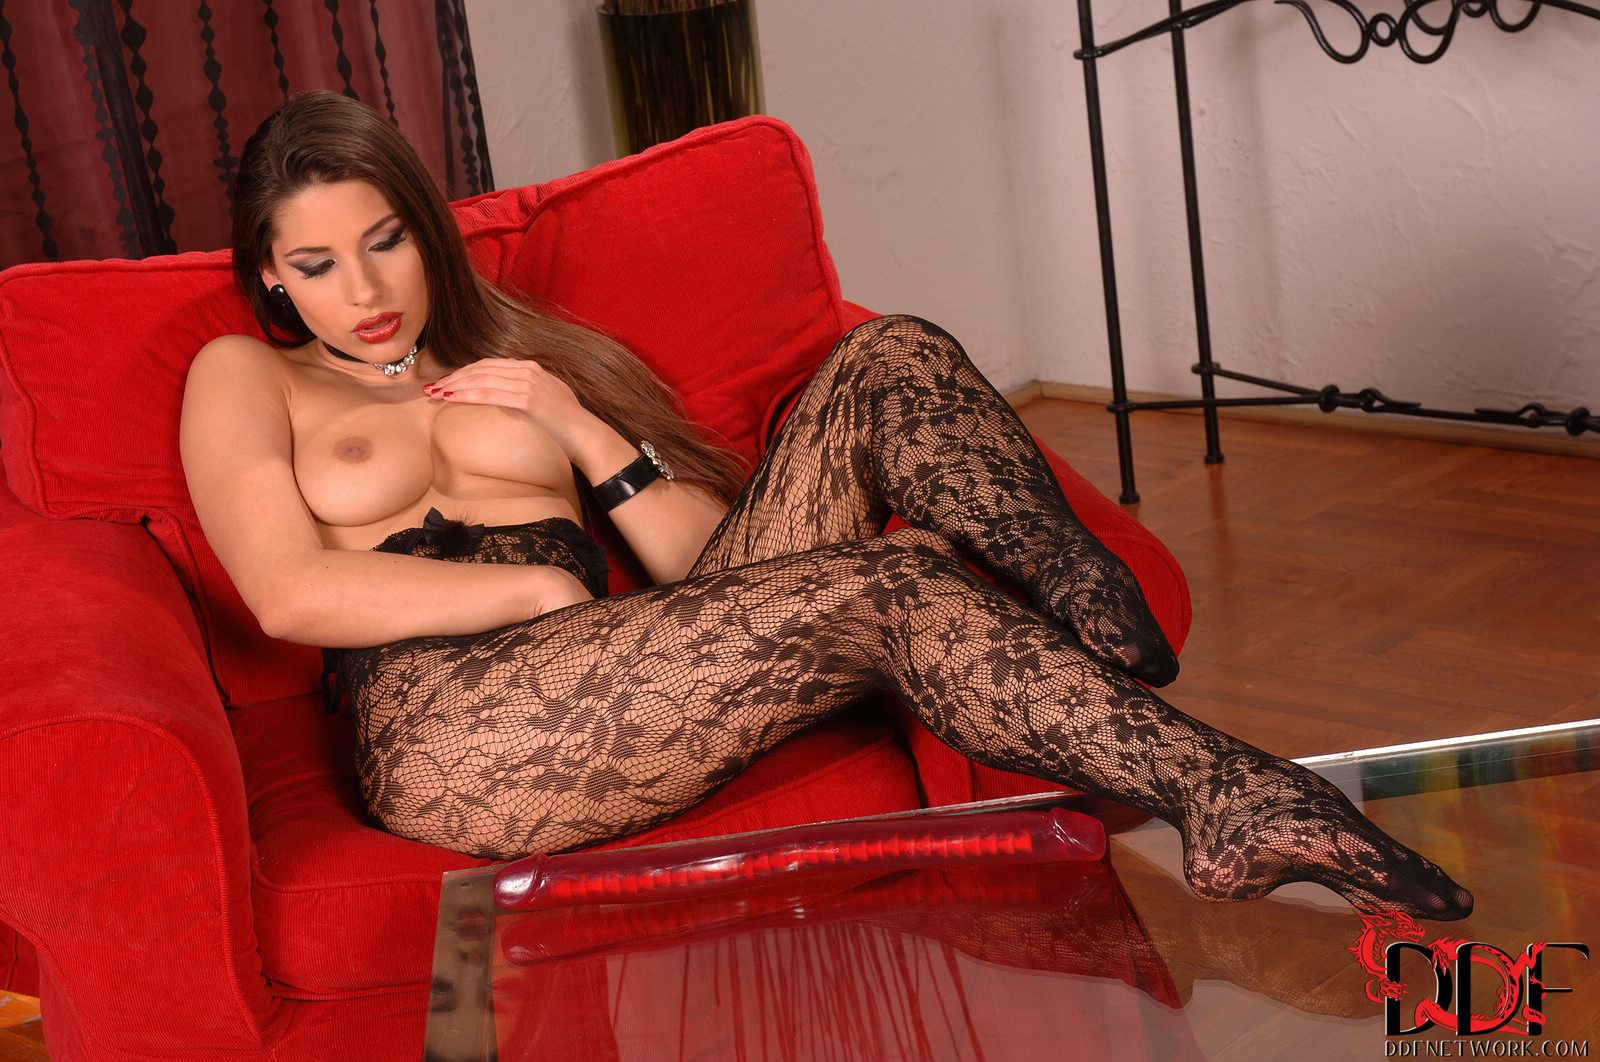 Showing off pantyhose for that